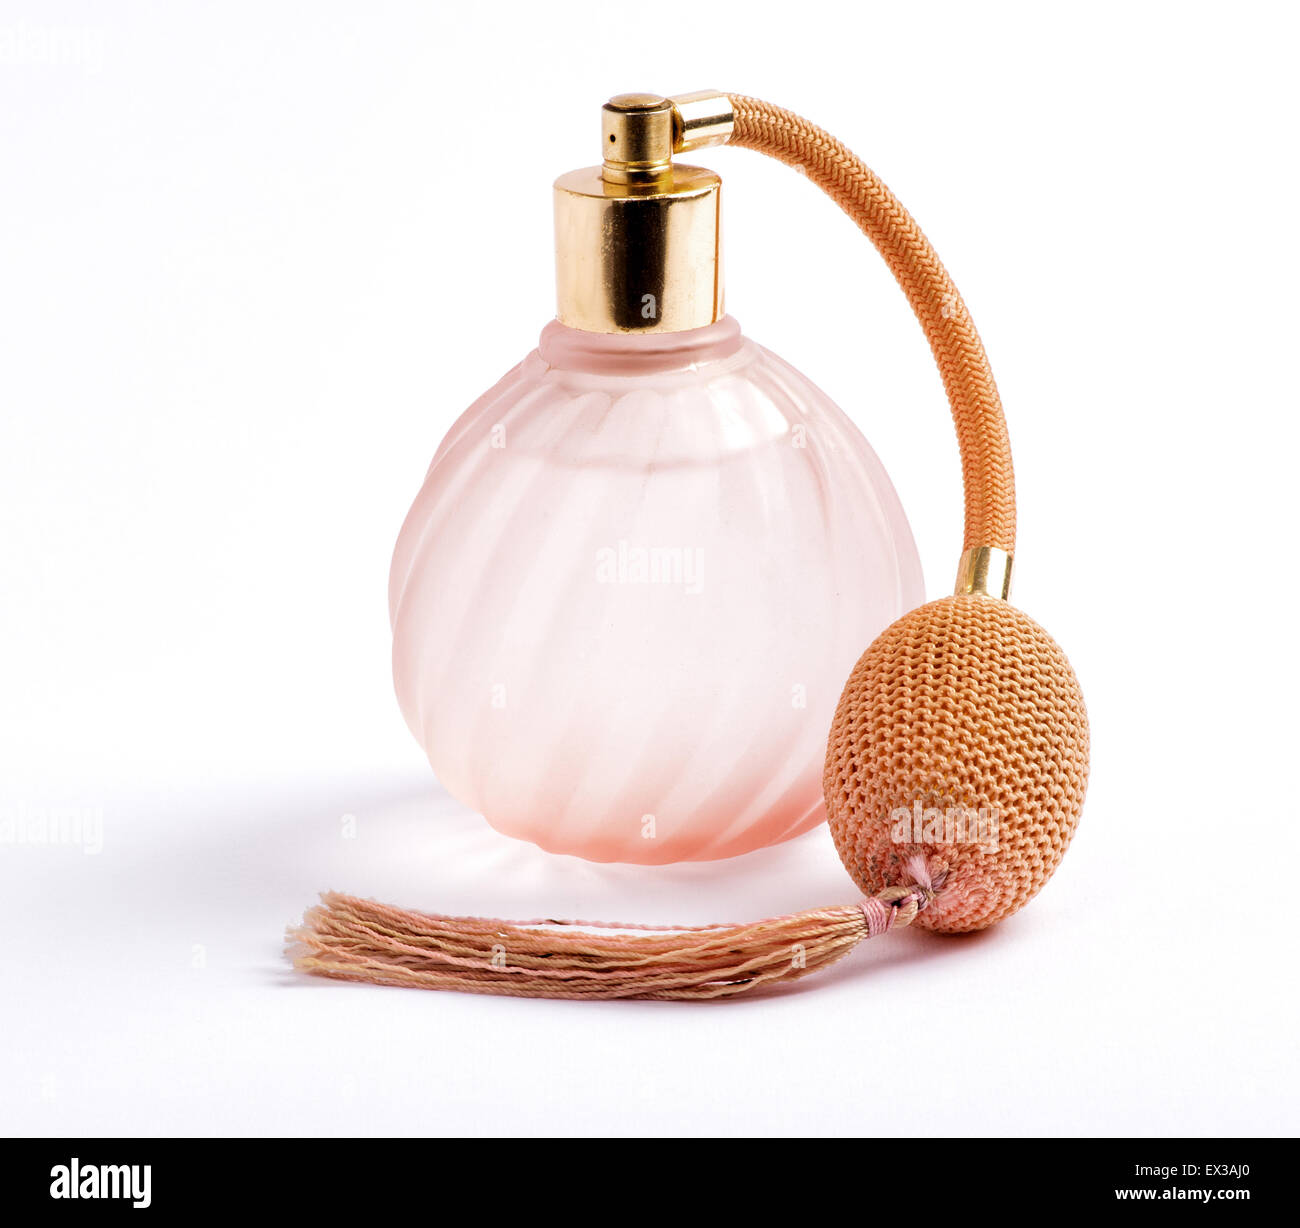 Classic perfume bottle with an atomizer pump for spraying the scent with attached long tassel in ridged swirling - Stock Image